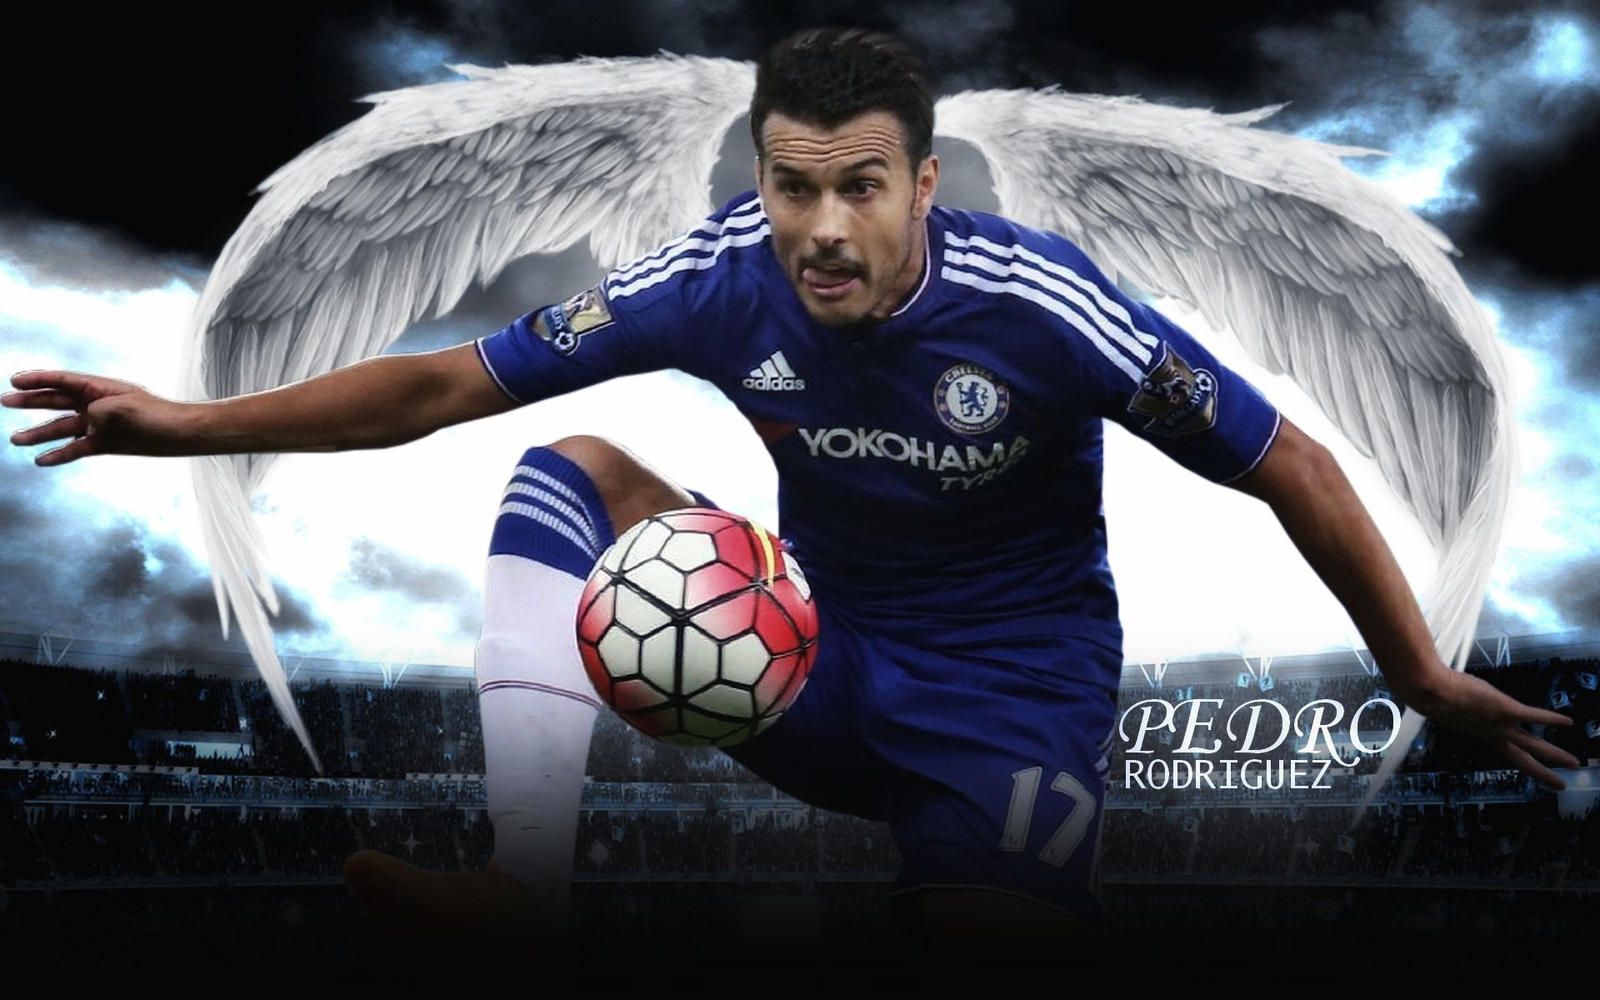 Pedro Rodriguez Wallpaper 2015-16 (CHELSEA) By ChrisRamos4